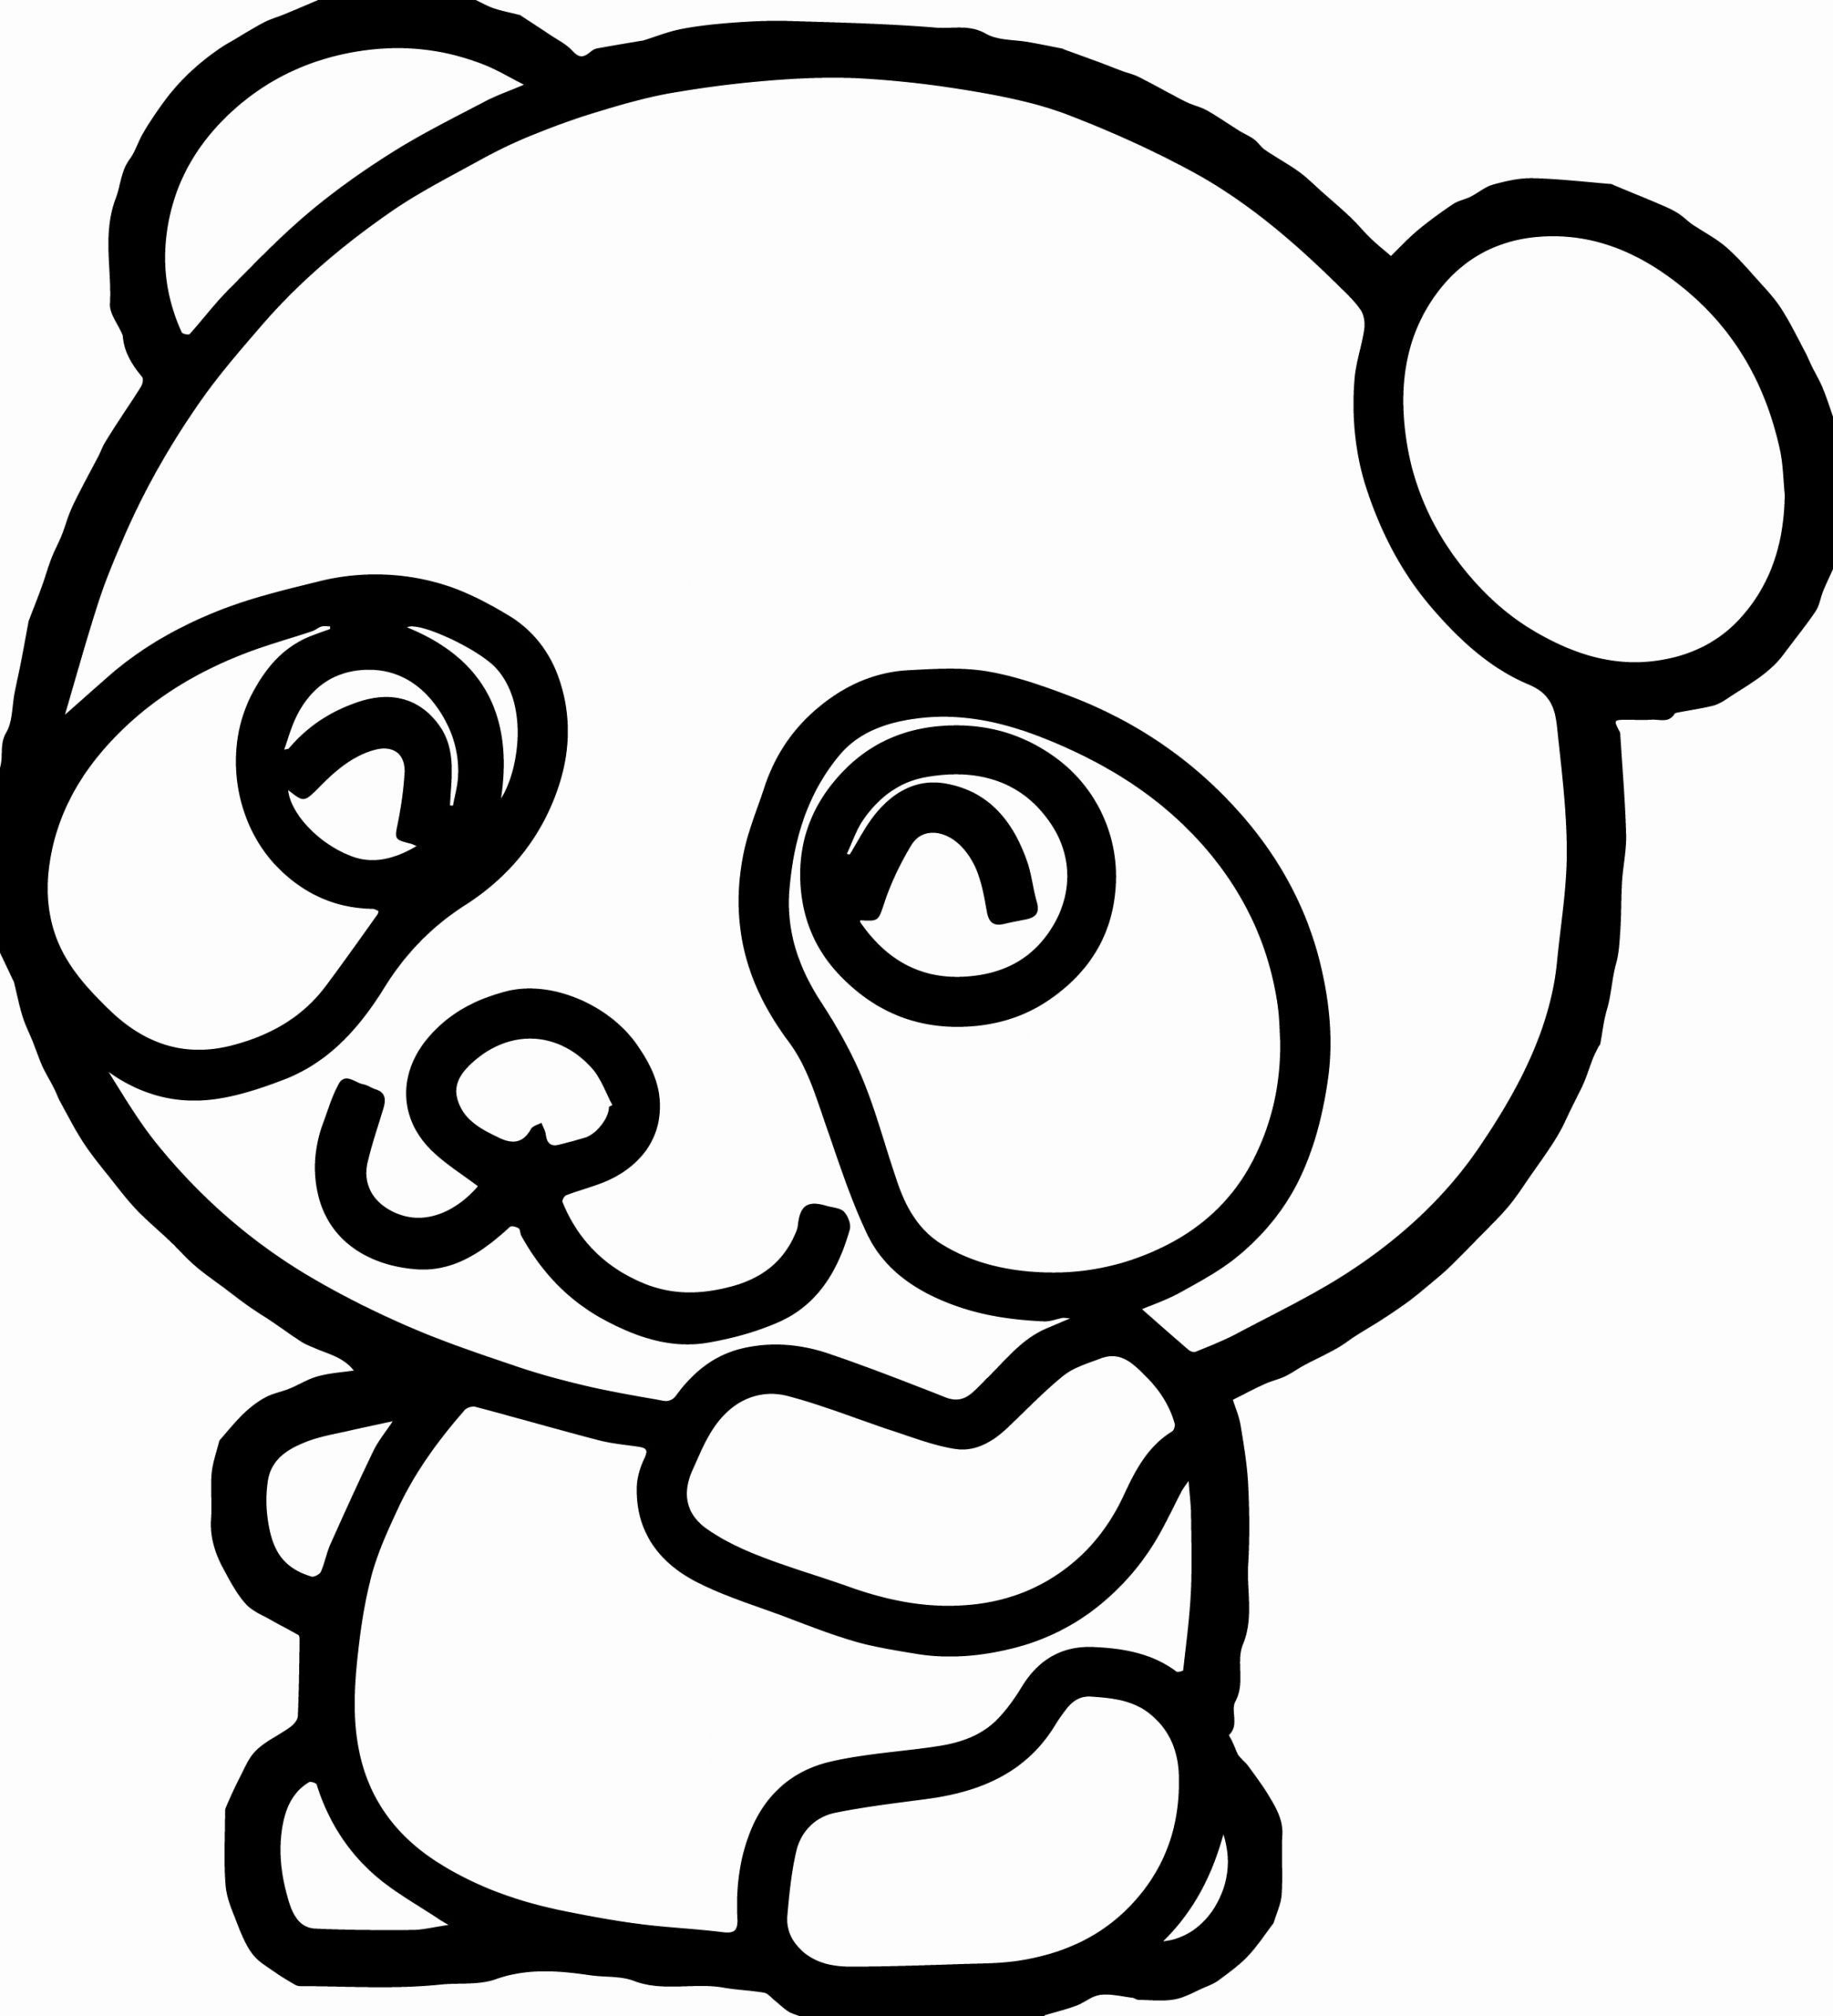 Combo Panda Coloring Page Luxury Coloring Pages Bo Panda Coloring Pages Panda Coloring Pages Monster Coloring Pages Emoji Coloring Pages